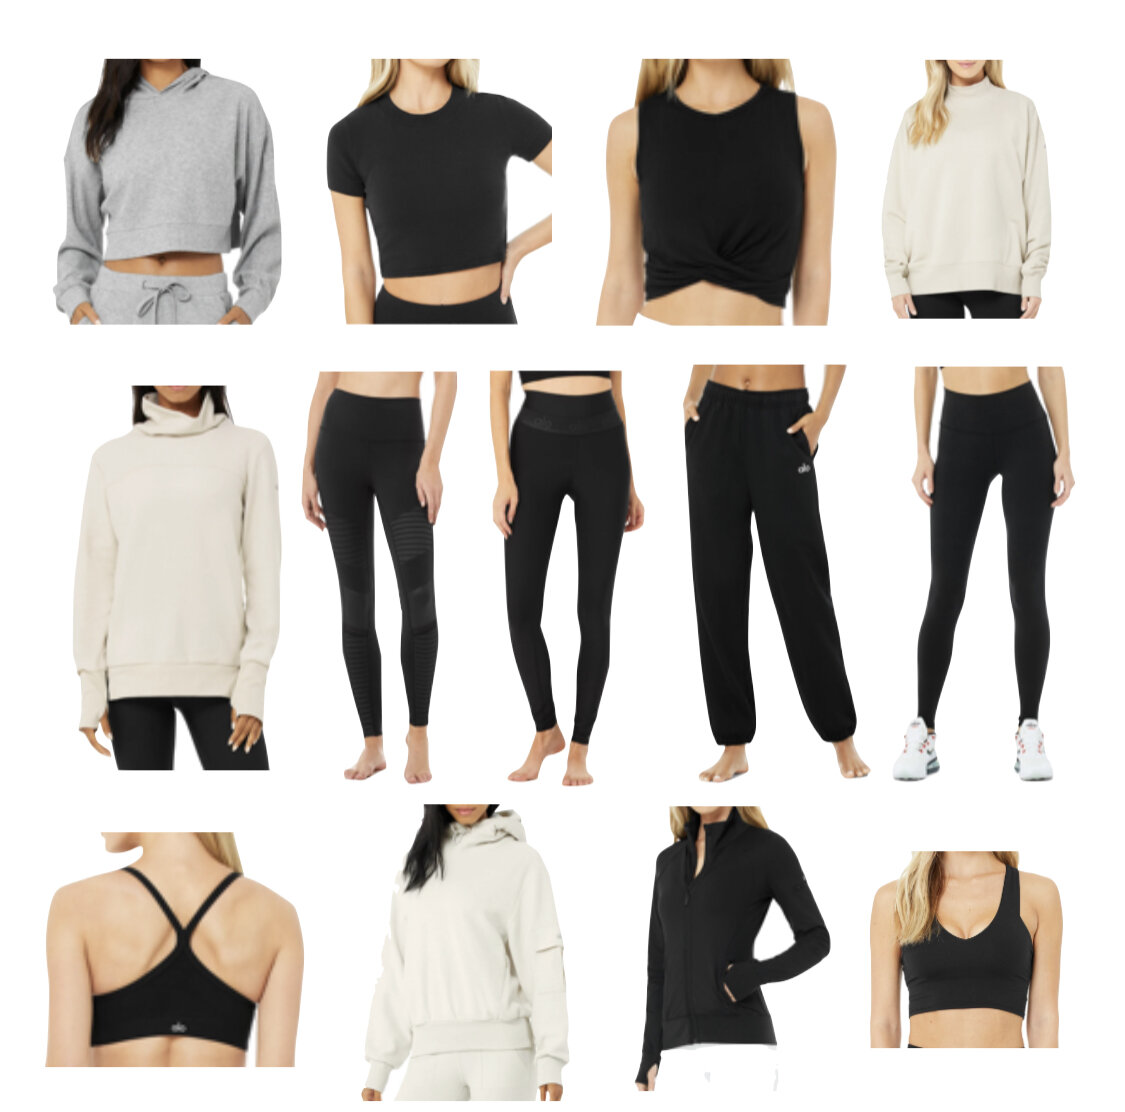 UP TO 70% OFF ALO YOGA